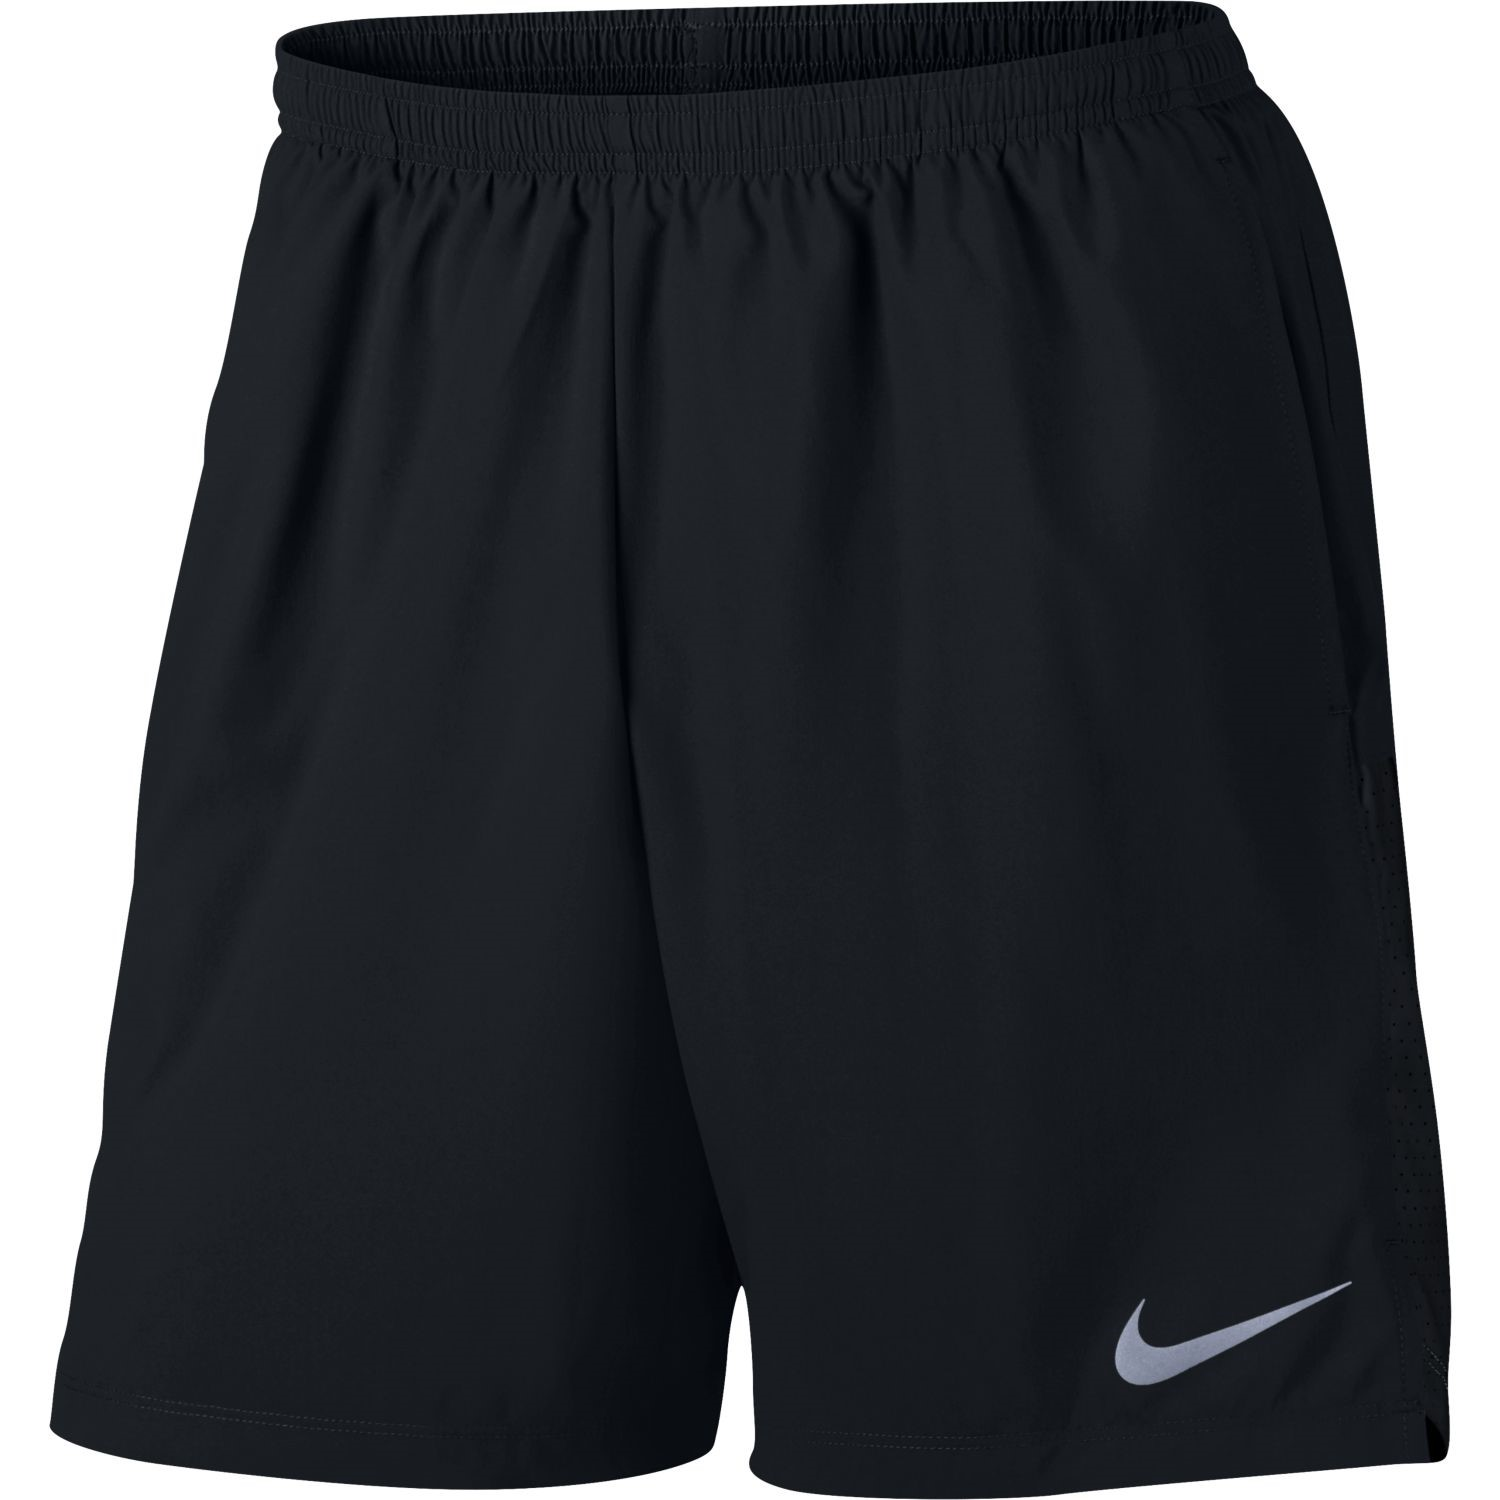 reputable site 0c95d 9fa44 Nike Flex Challenger 7 Inch Mens Running Shorts - Black